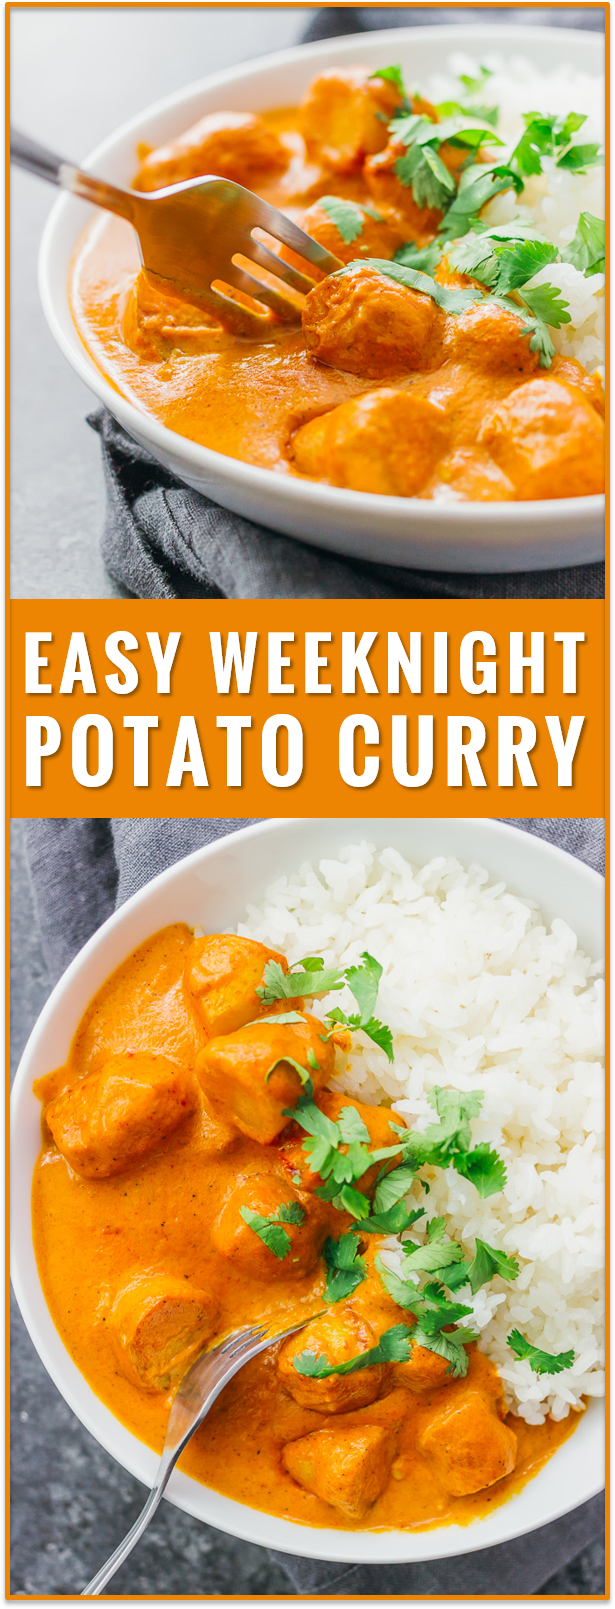 This easy vegetarian potato curry has a delicious orange sauce similar to an Indian tikka masala sauce. vegetarian chicken tikka masala recipe, dinner, fast, easy, recipe, dum aloo, vegan, indian, meals, sweet, chickpea, lentil, soup, thai, coconut